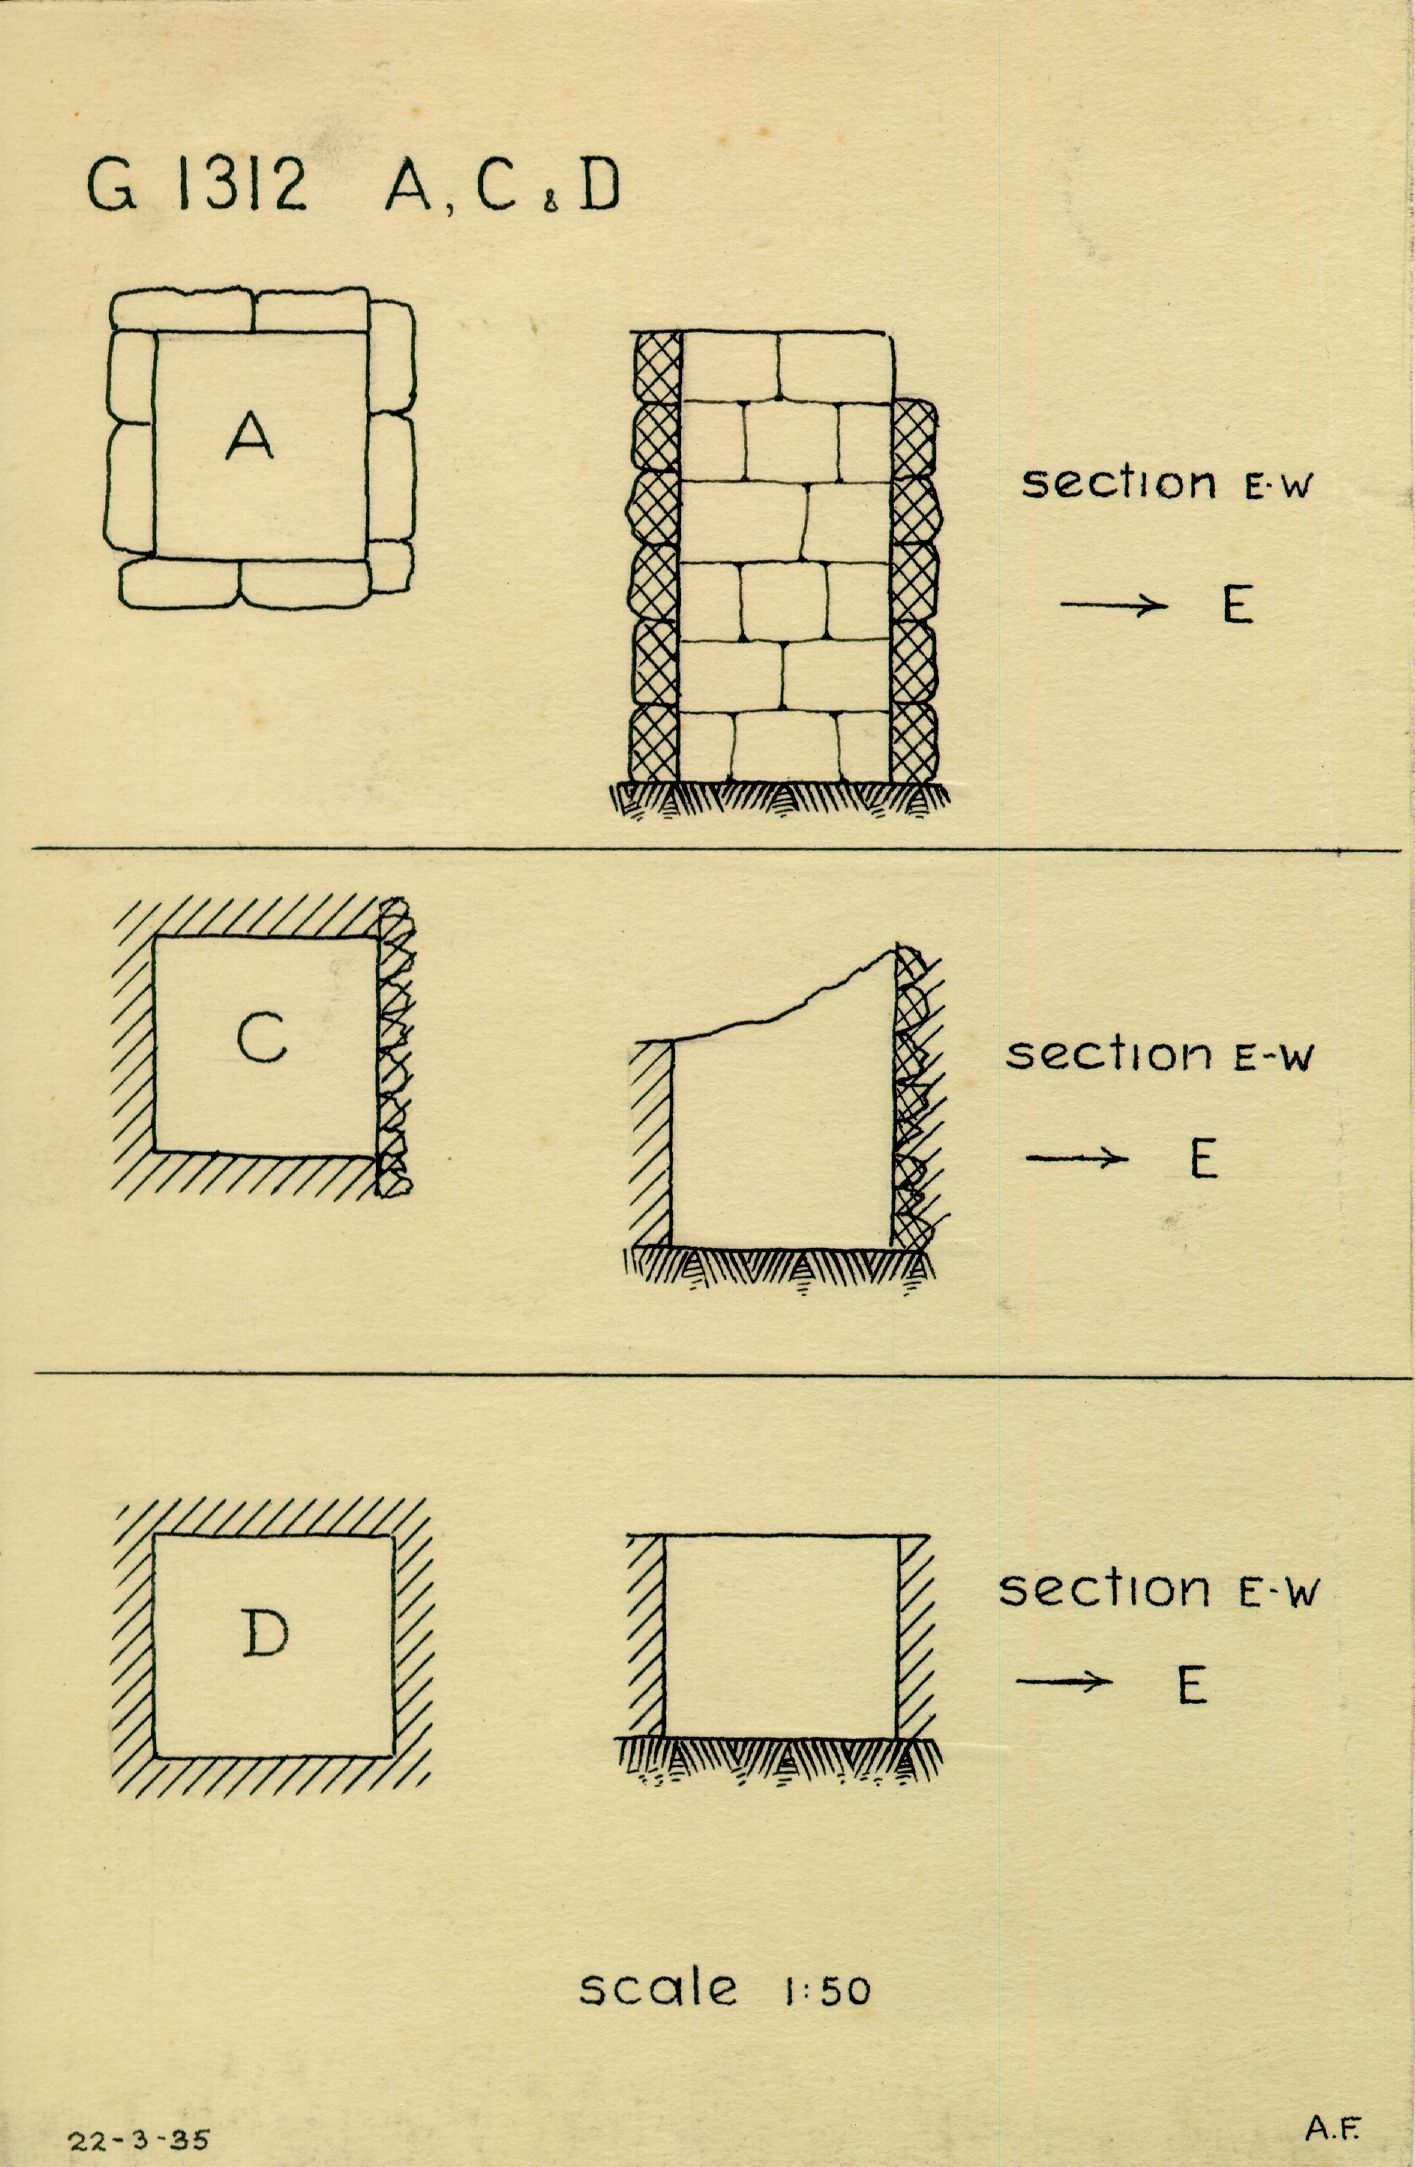 Maps and plans: G 1312, Shaft A, C, D